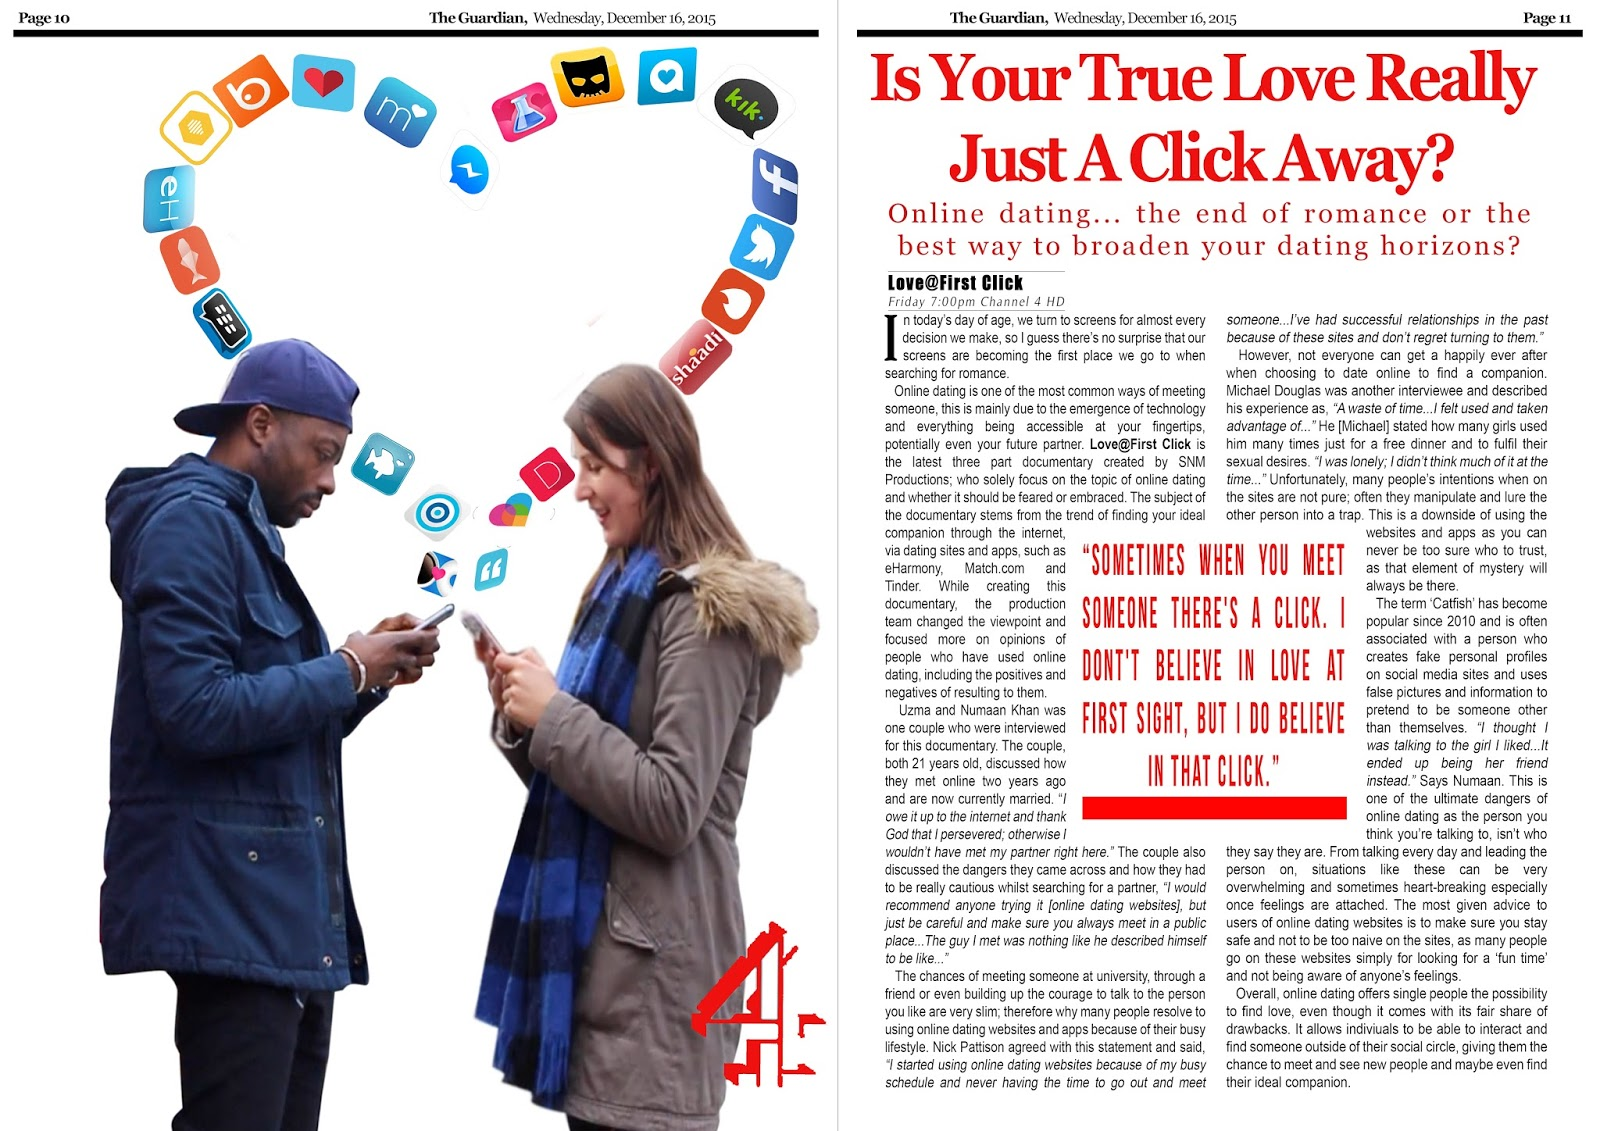 anyone tried online dating 80% of americans who have used online dating agree that online dating is a good way to meet people [12] 61% of adults who have tried online dating agree that it is easier and more efficient than other ways of meeting people.